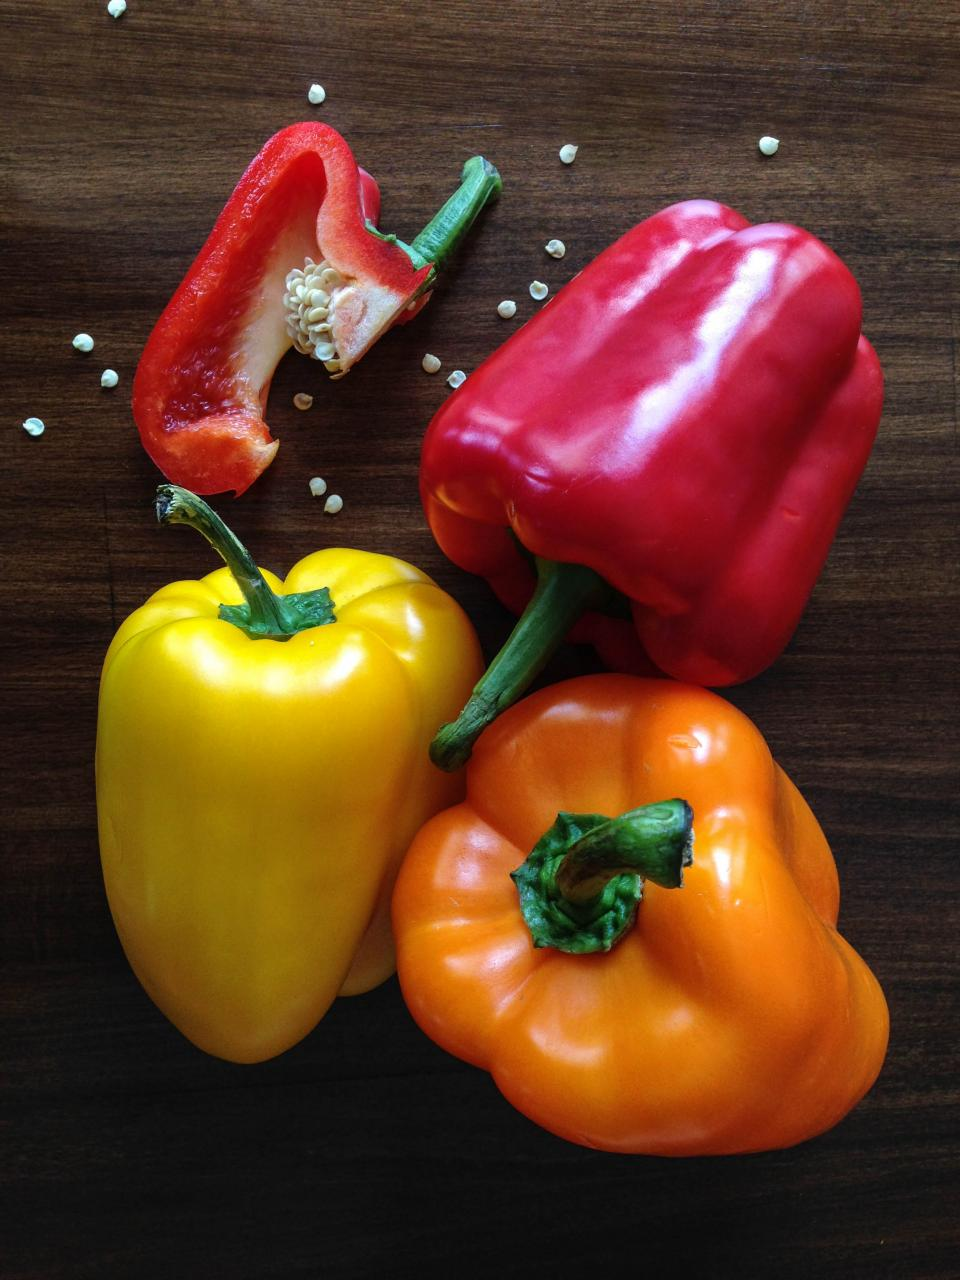 yellow wood vegetables seeds red peppers orange